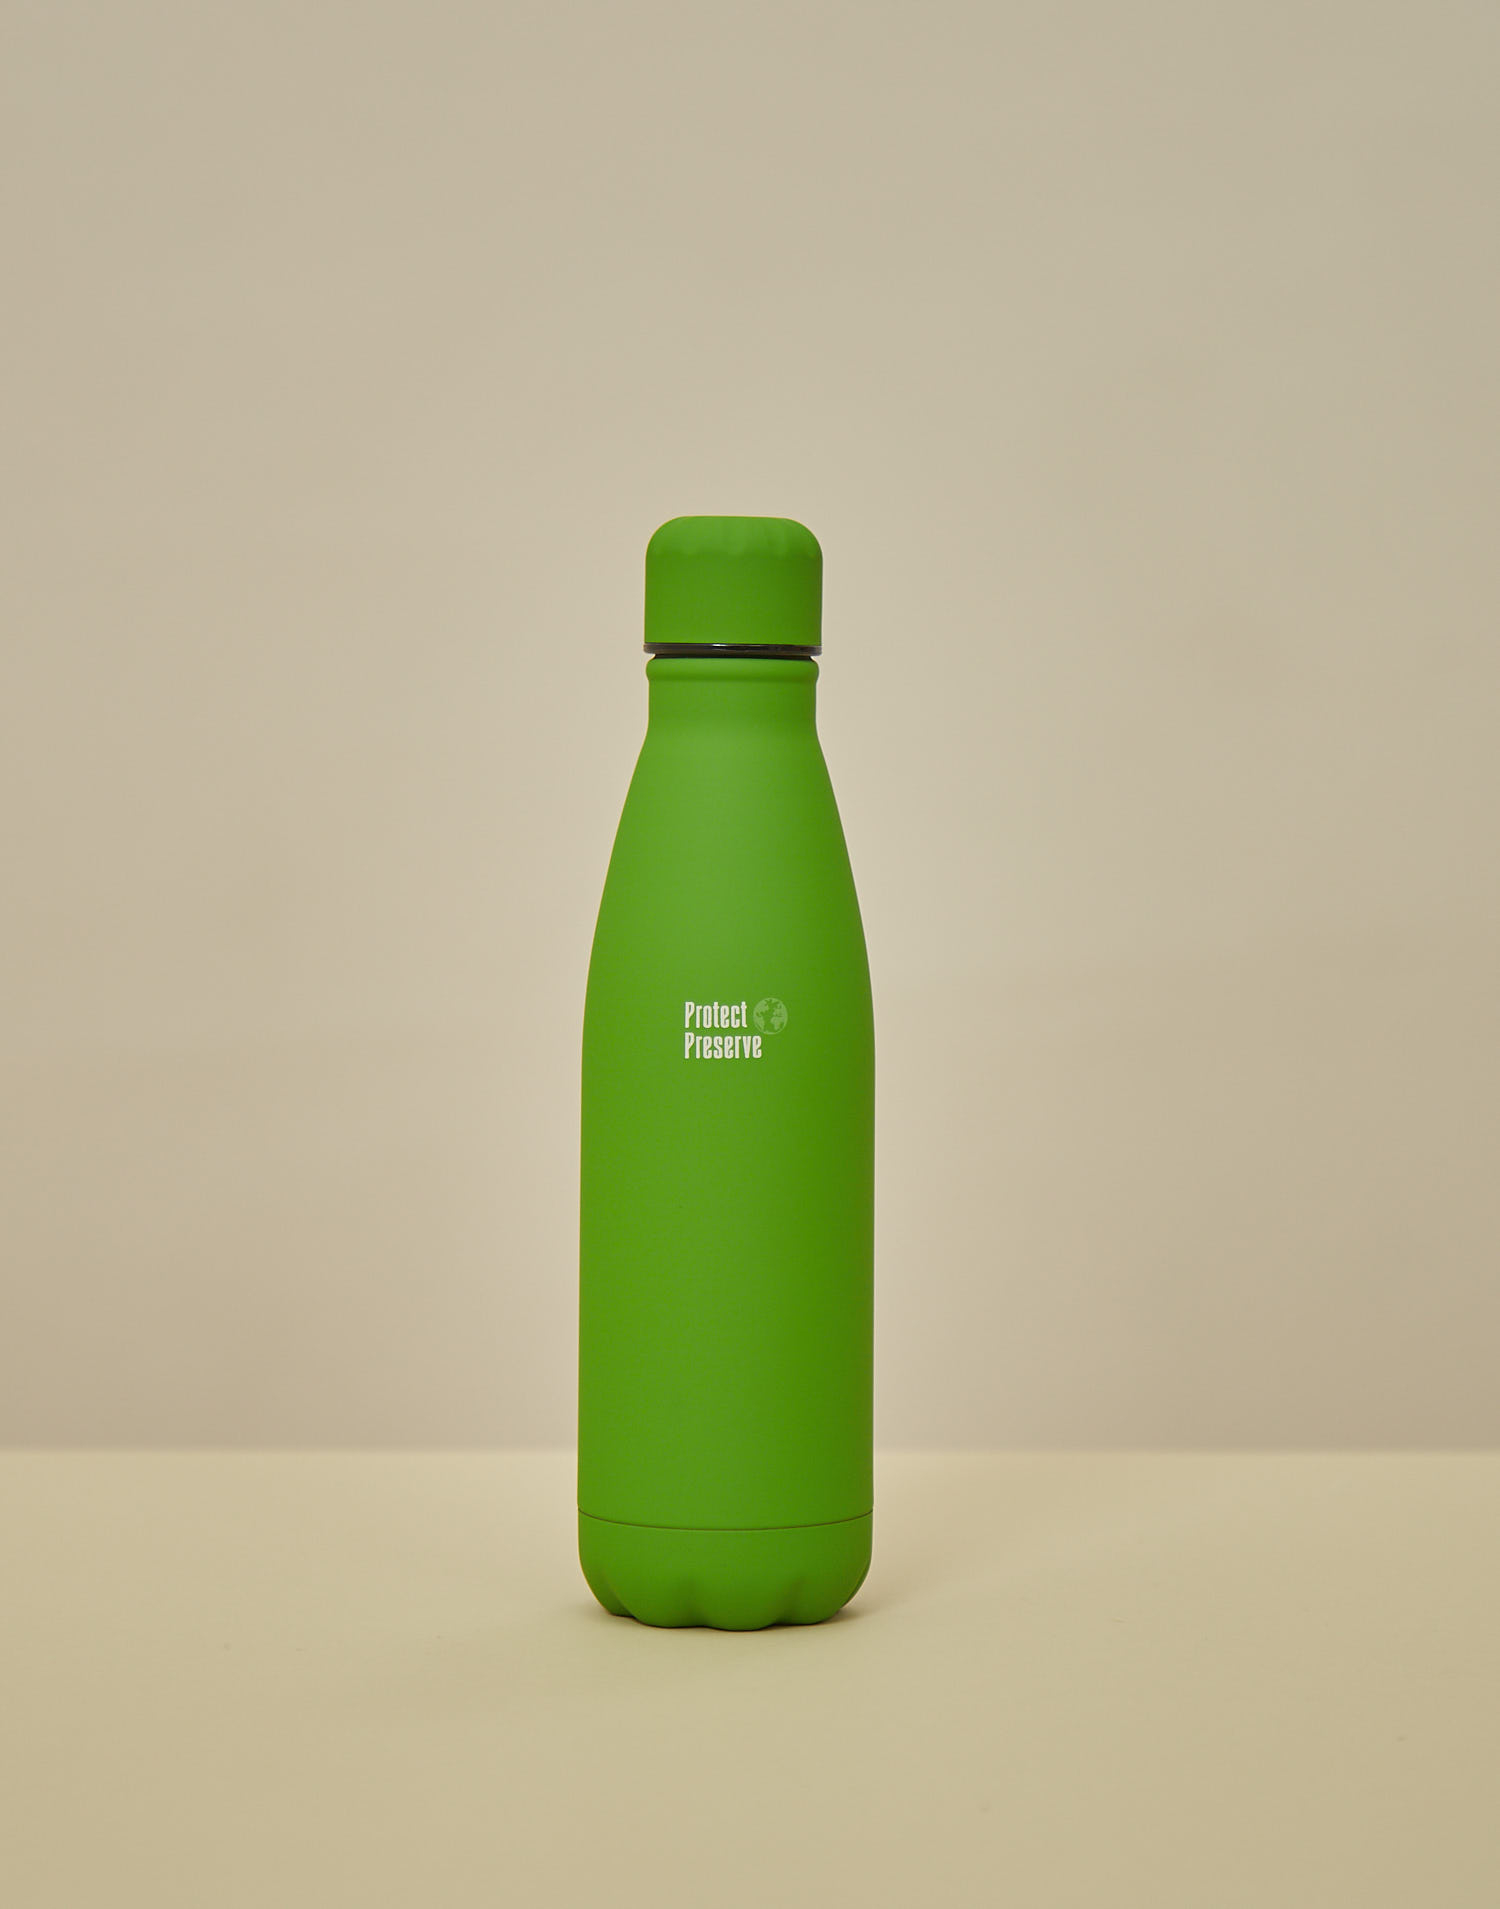 Protect preserve flask bottle 500ml